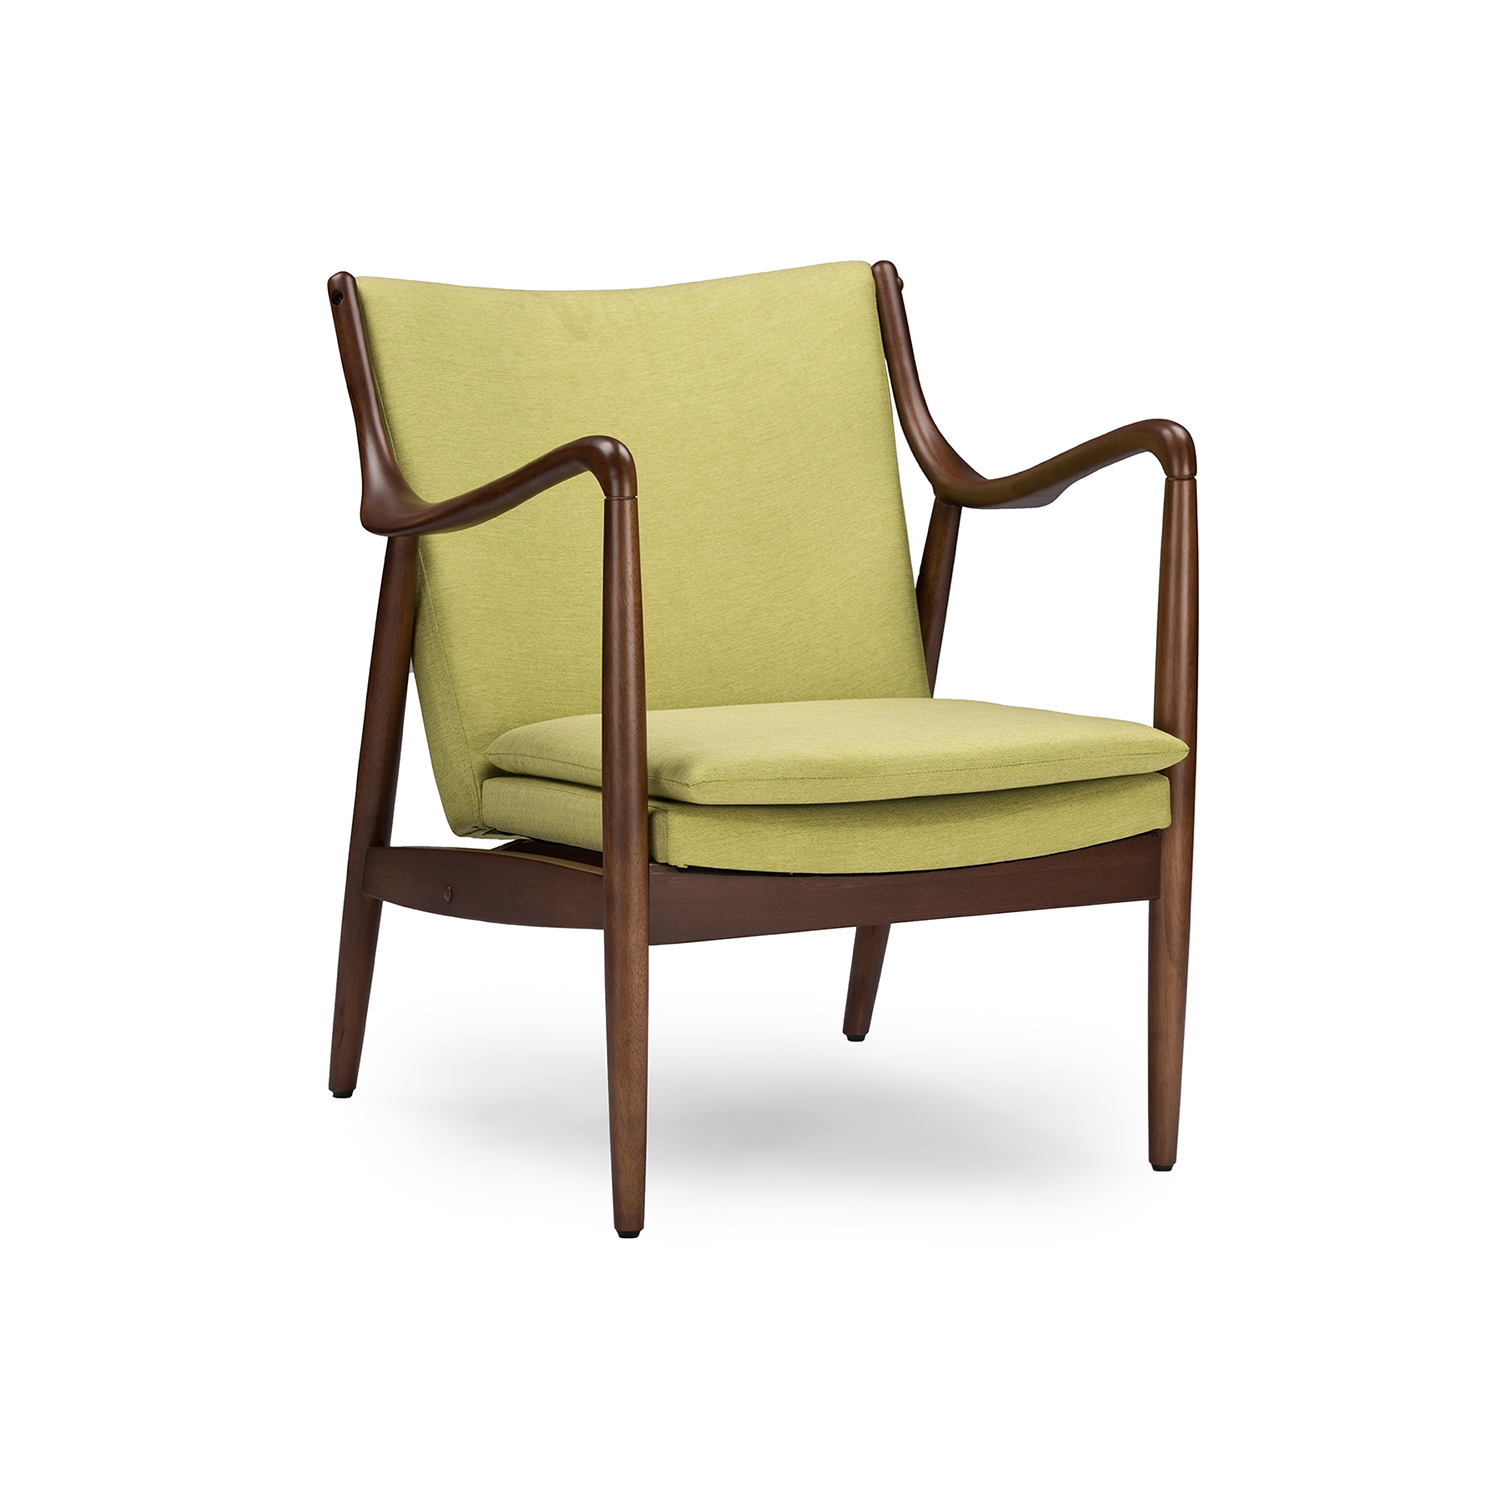 wood frame accent chairs. Baxton Studio Shakespeare Mid-Century Modern Retro Green Fabric Upholstered Leisure Accent Chair In Walnut Wood Frame Chairs E